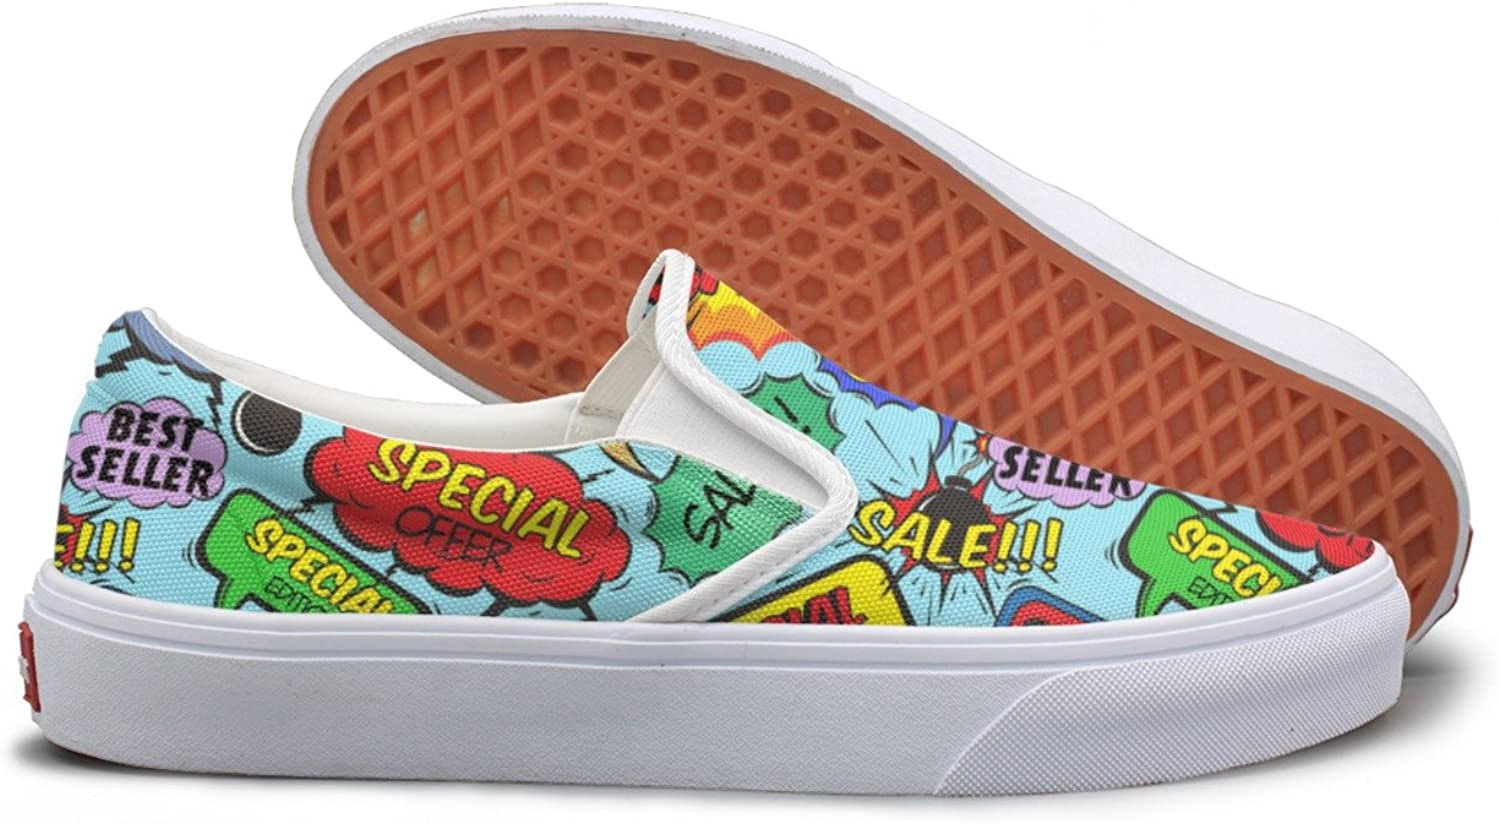 SEERTED Balloon Cartoon Comfortable Sneakers for Women Walking